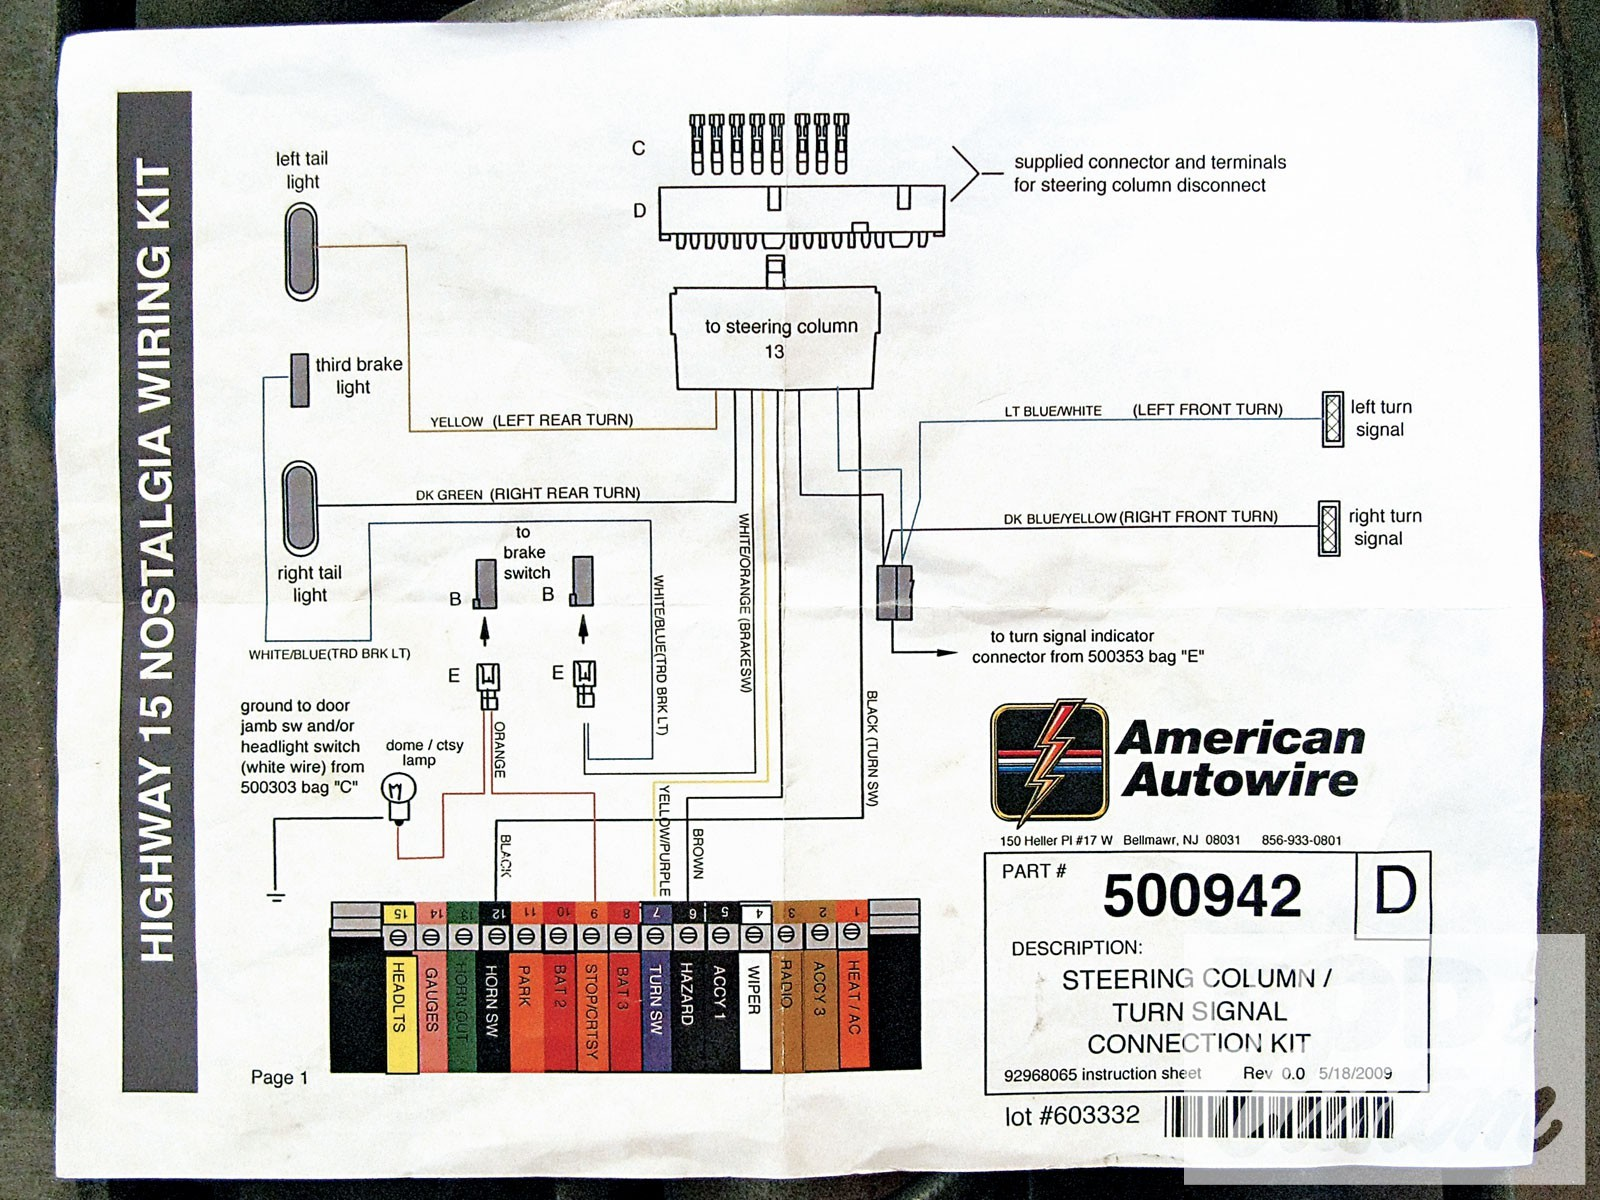 Turn Signals Wiring Diagram For 1964 Chevelle 1970 Signal Chevy C10 Blower Motor 1978 Chevrolet Rh Banyan Palace Com Impala